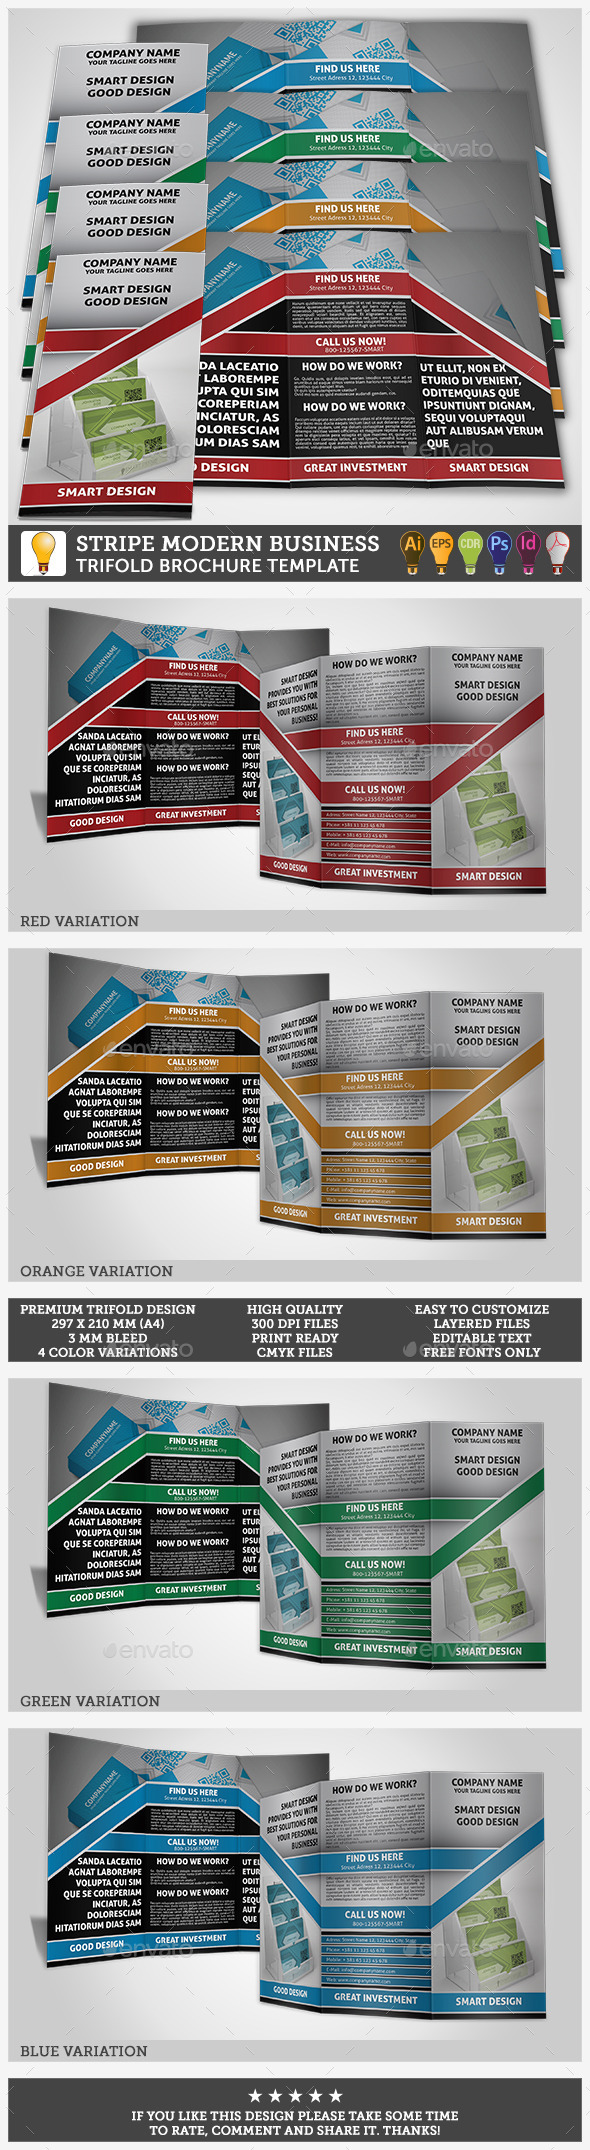 Modern Business Trifold Stripe Template  - Corporate Brochures